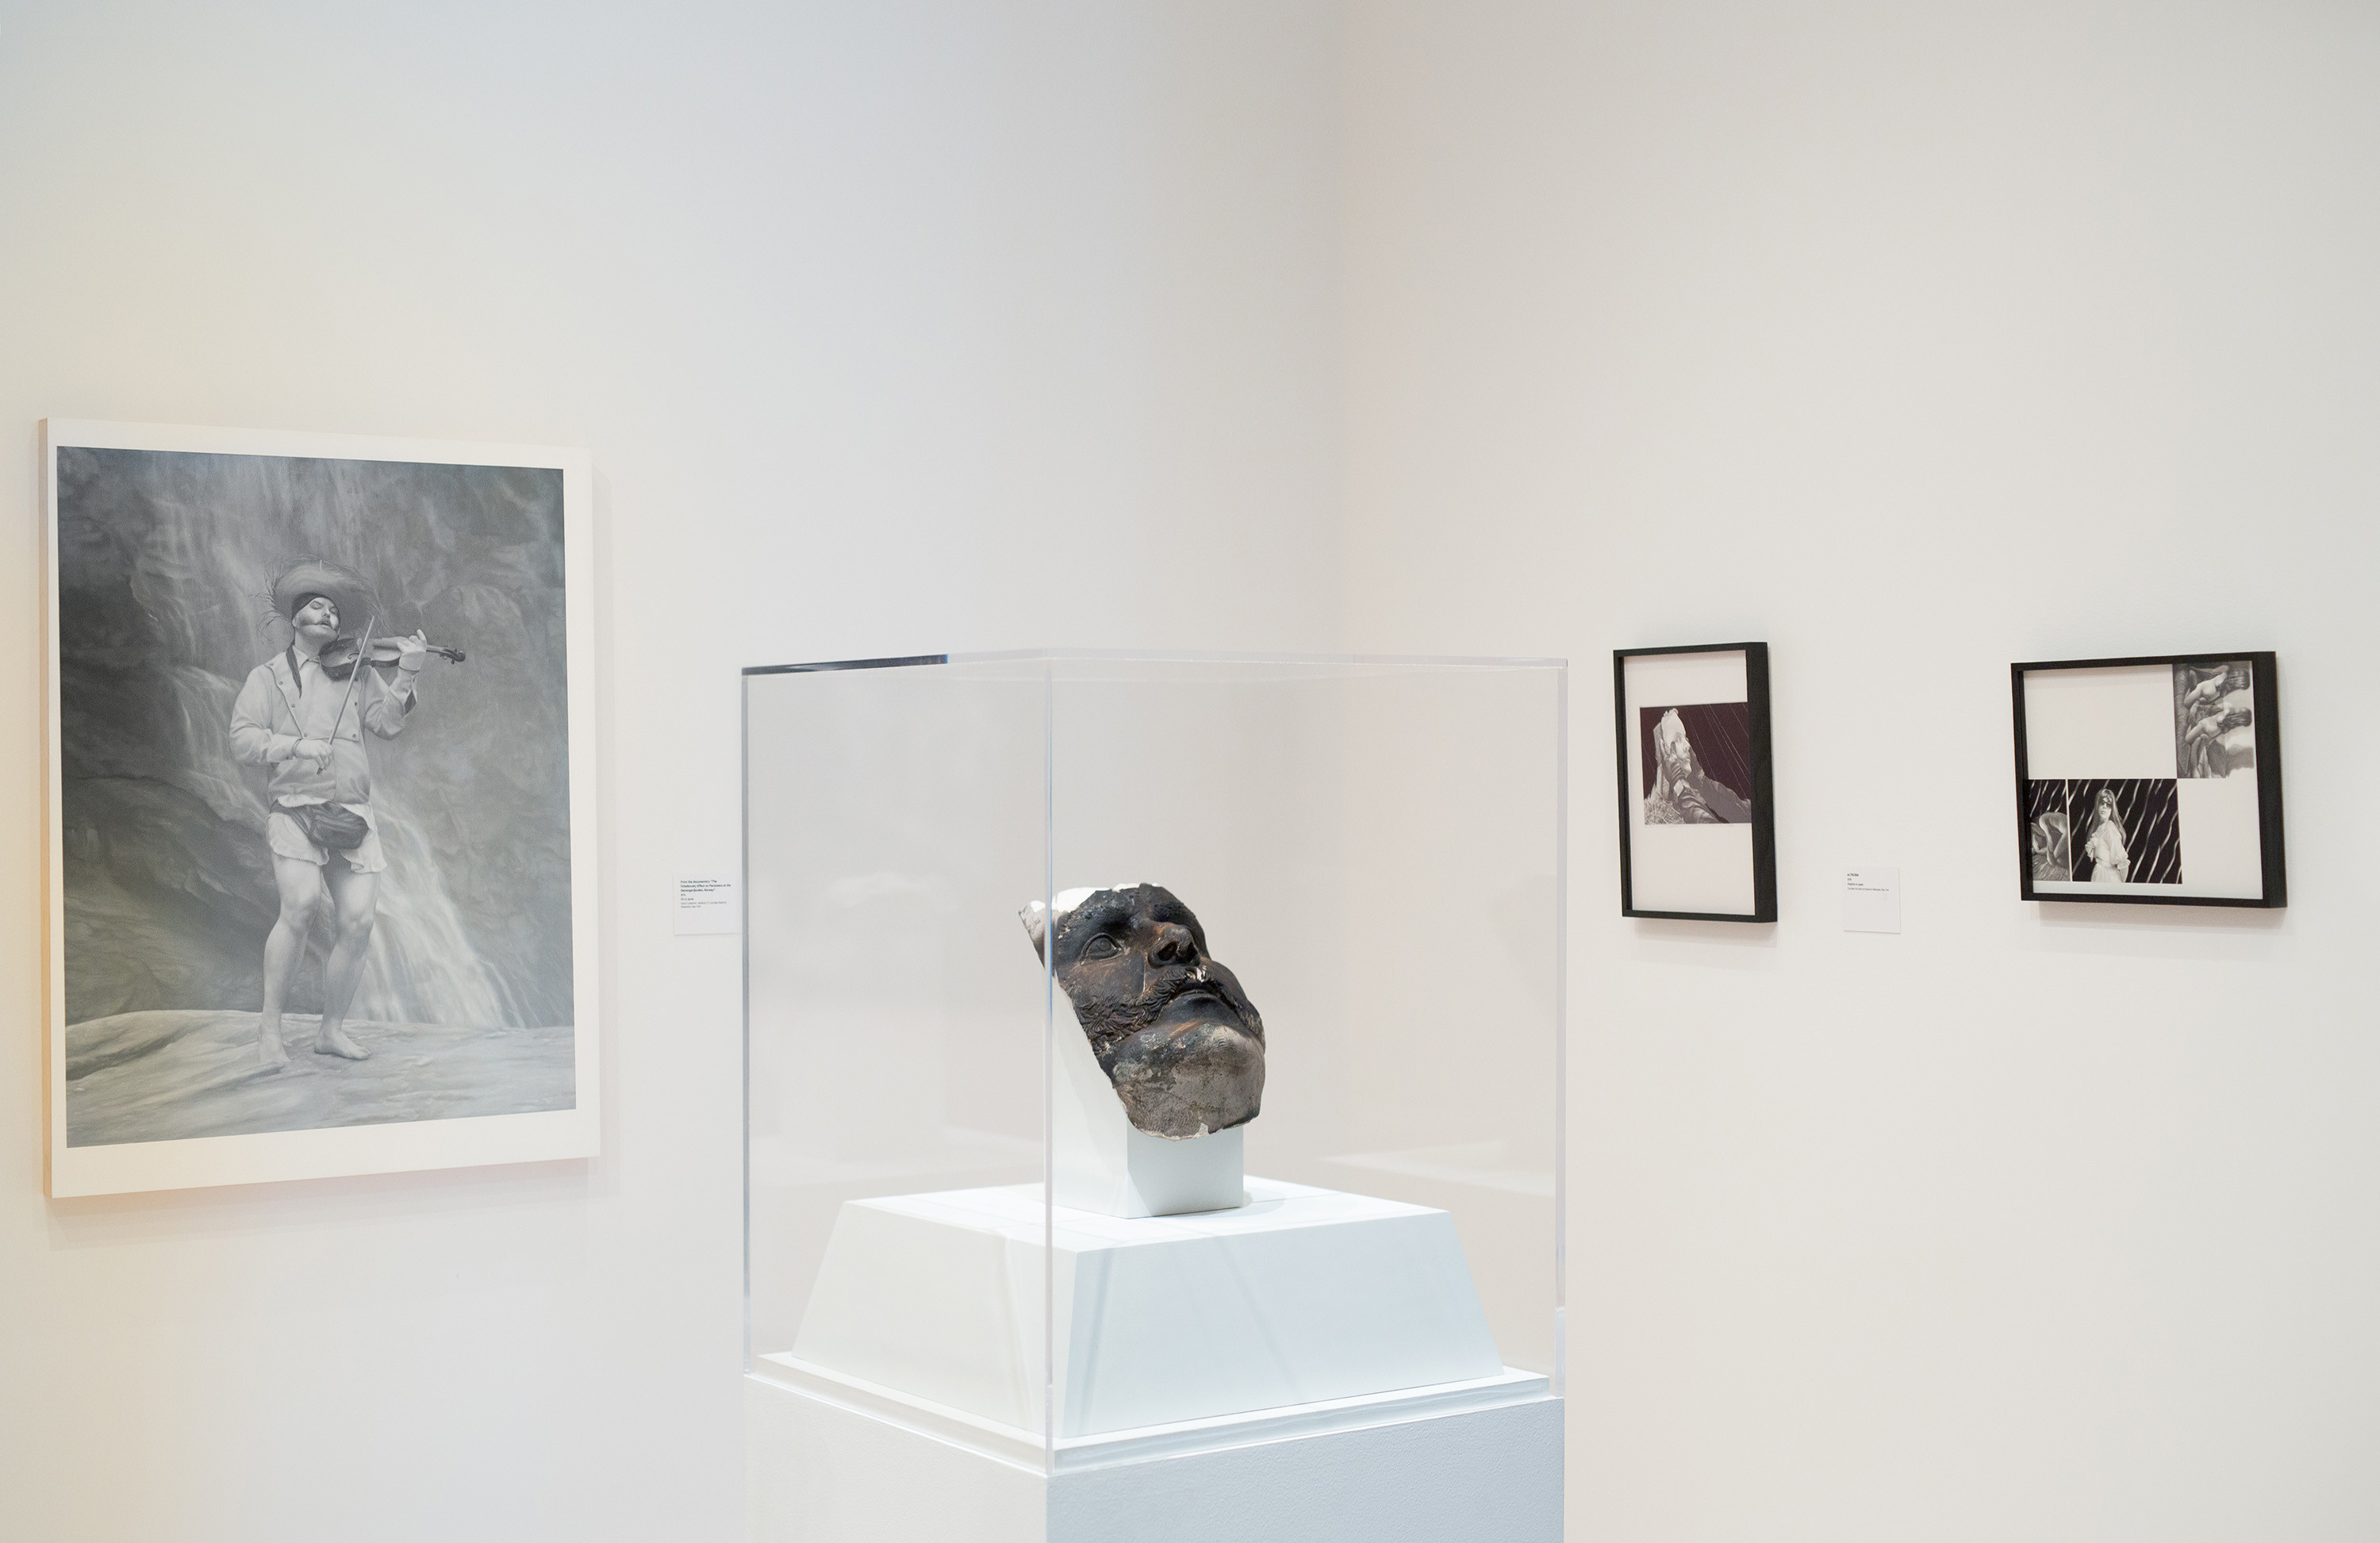 <i>Andrew Sendor: Paintings, Drawings and a Film</i>, installation view at the Eli and Edythe Broad Art Museum at Michigan State University, 2015. Photo: Eat Pomegranate Photography